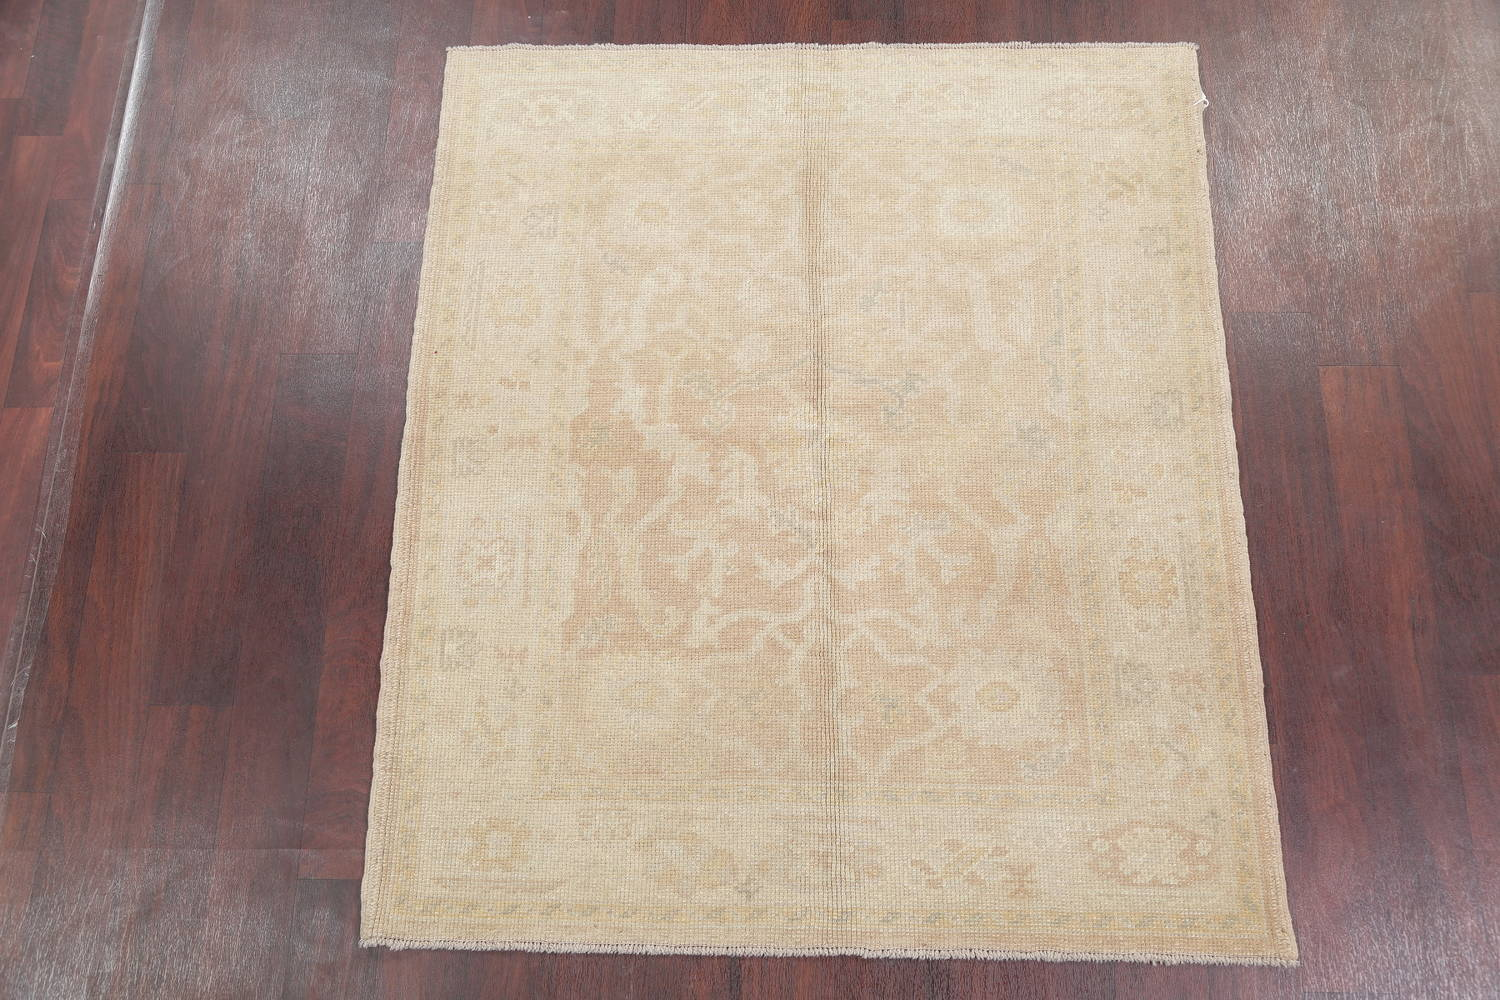 Vegetable Dye Muted Gold Oushak Turkish Hand-Knotted Area Rug 4x5 image 2